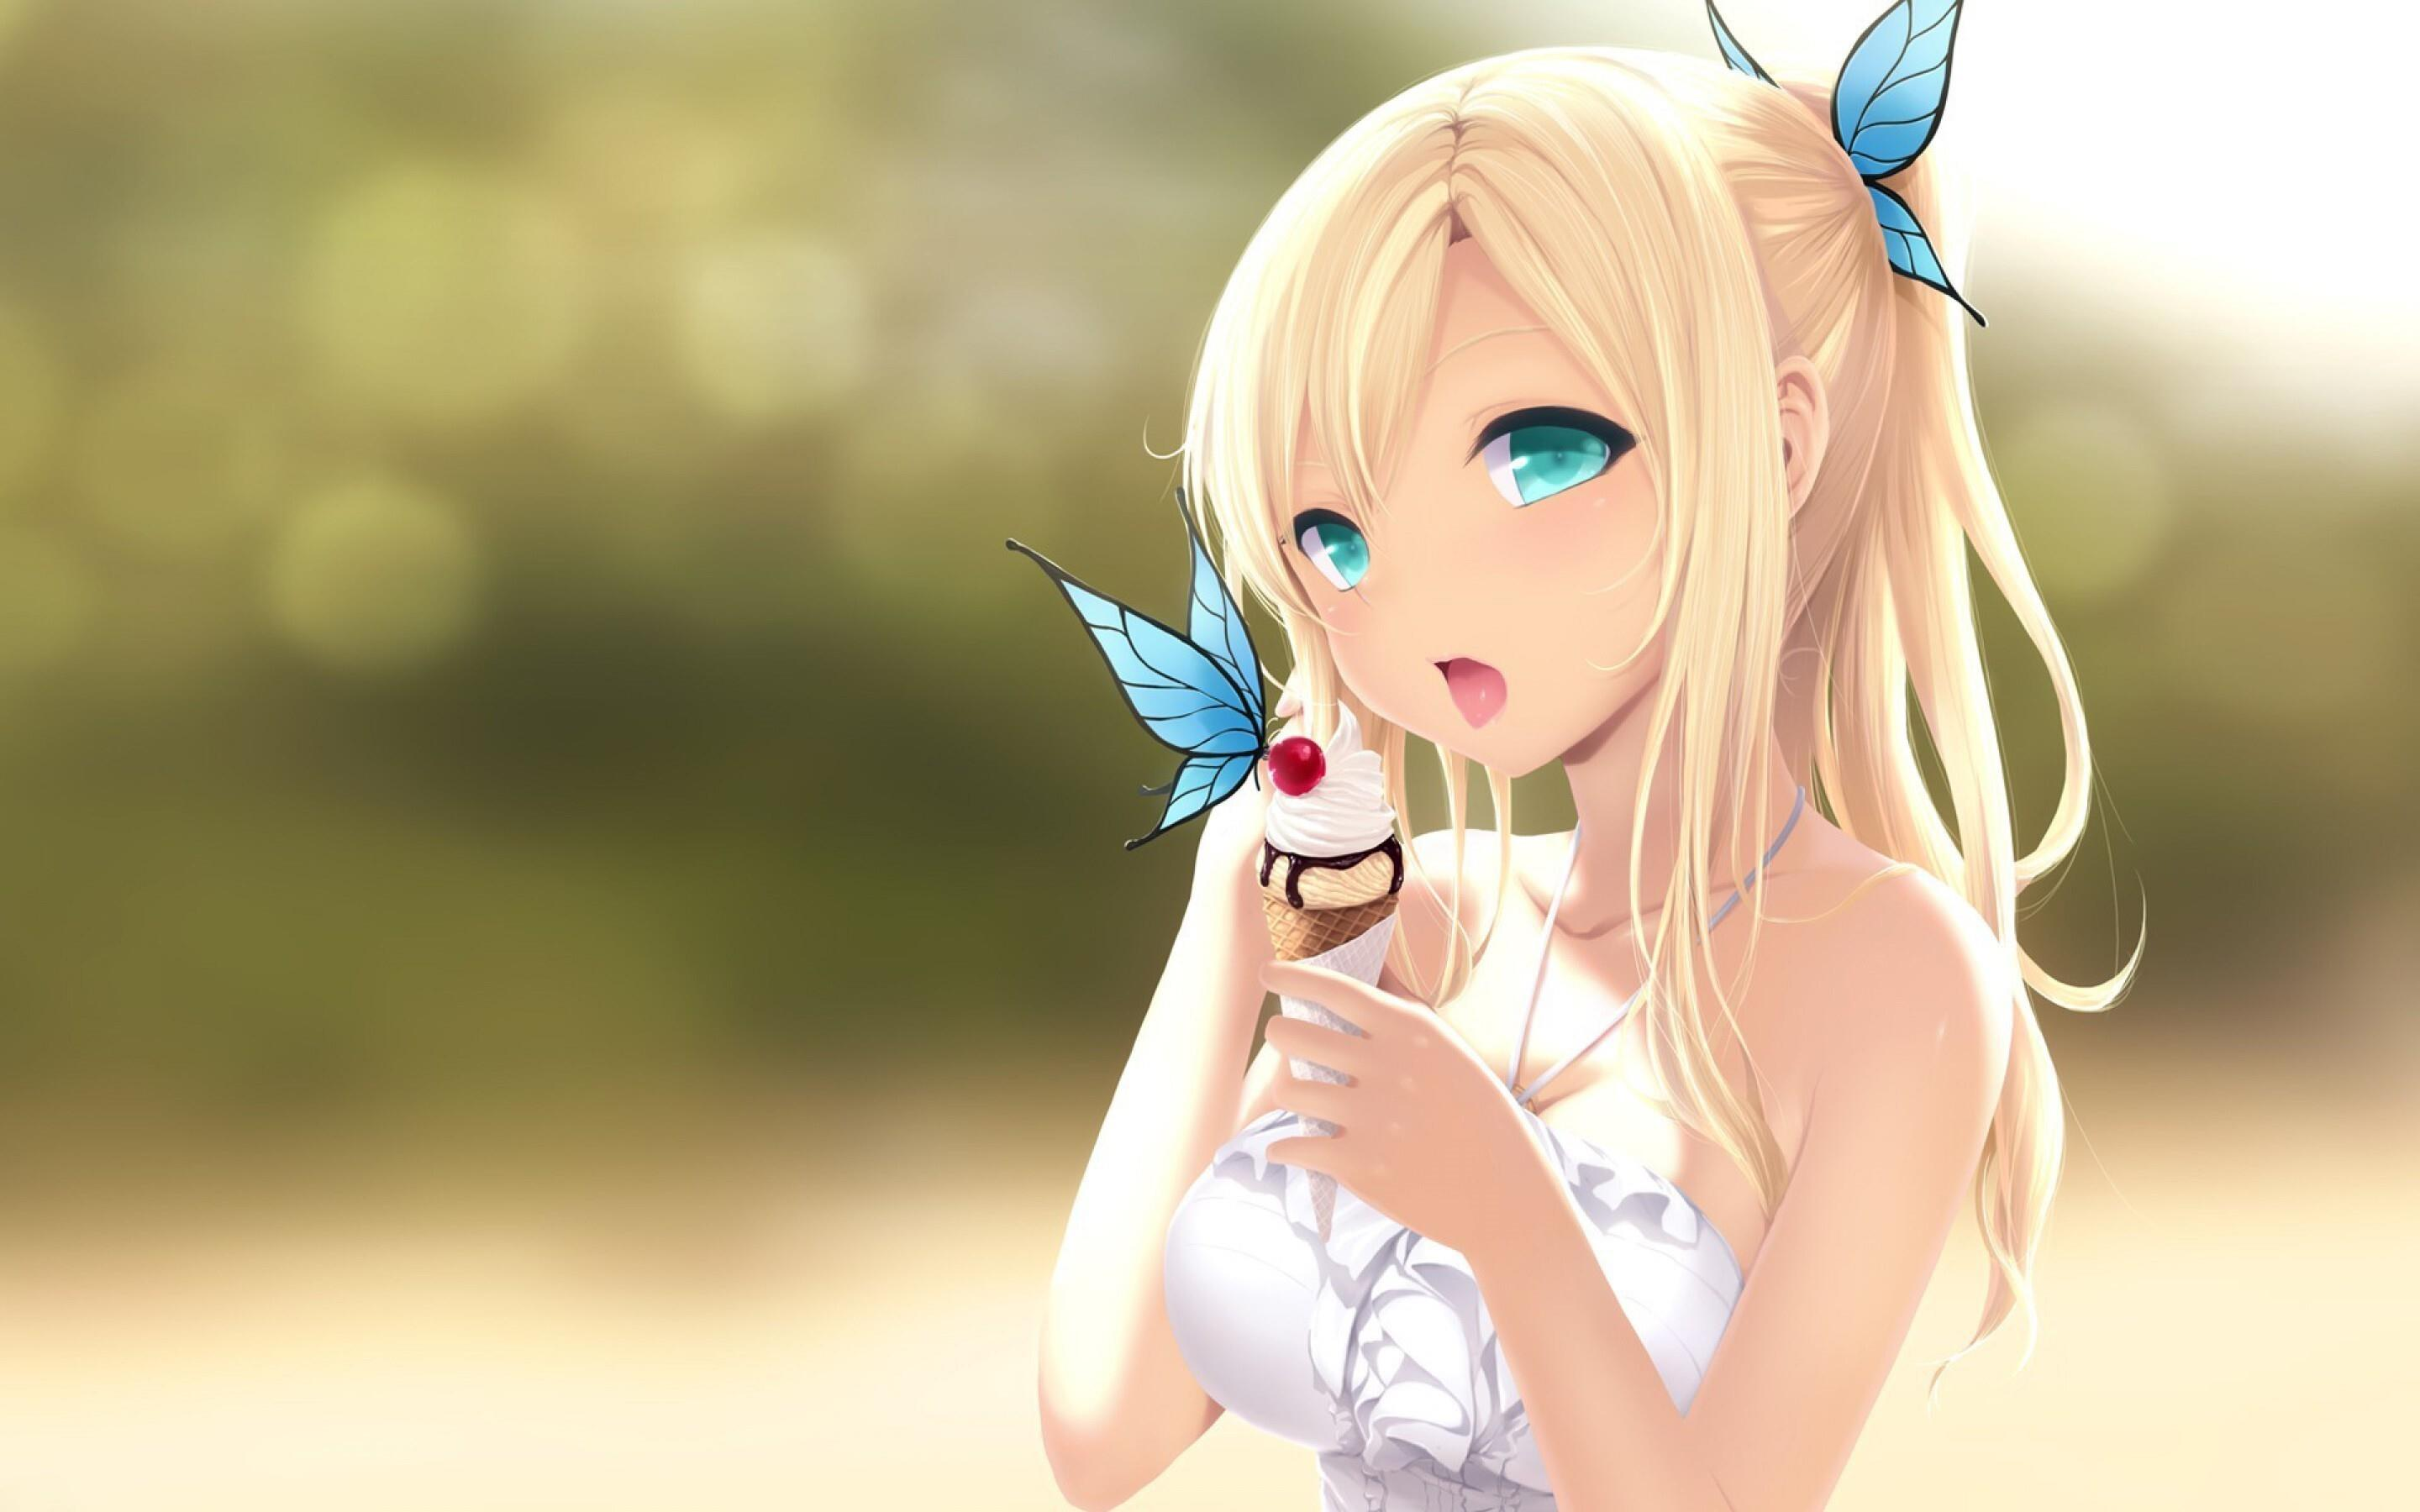 2880x1800 Anime Papillons Cartoon Girl HD Wallpaper